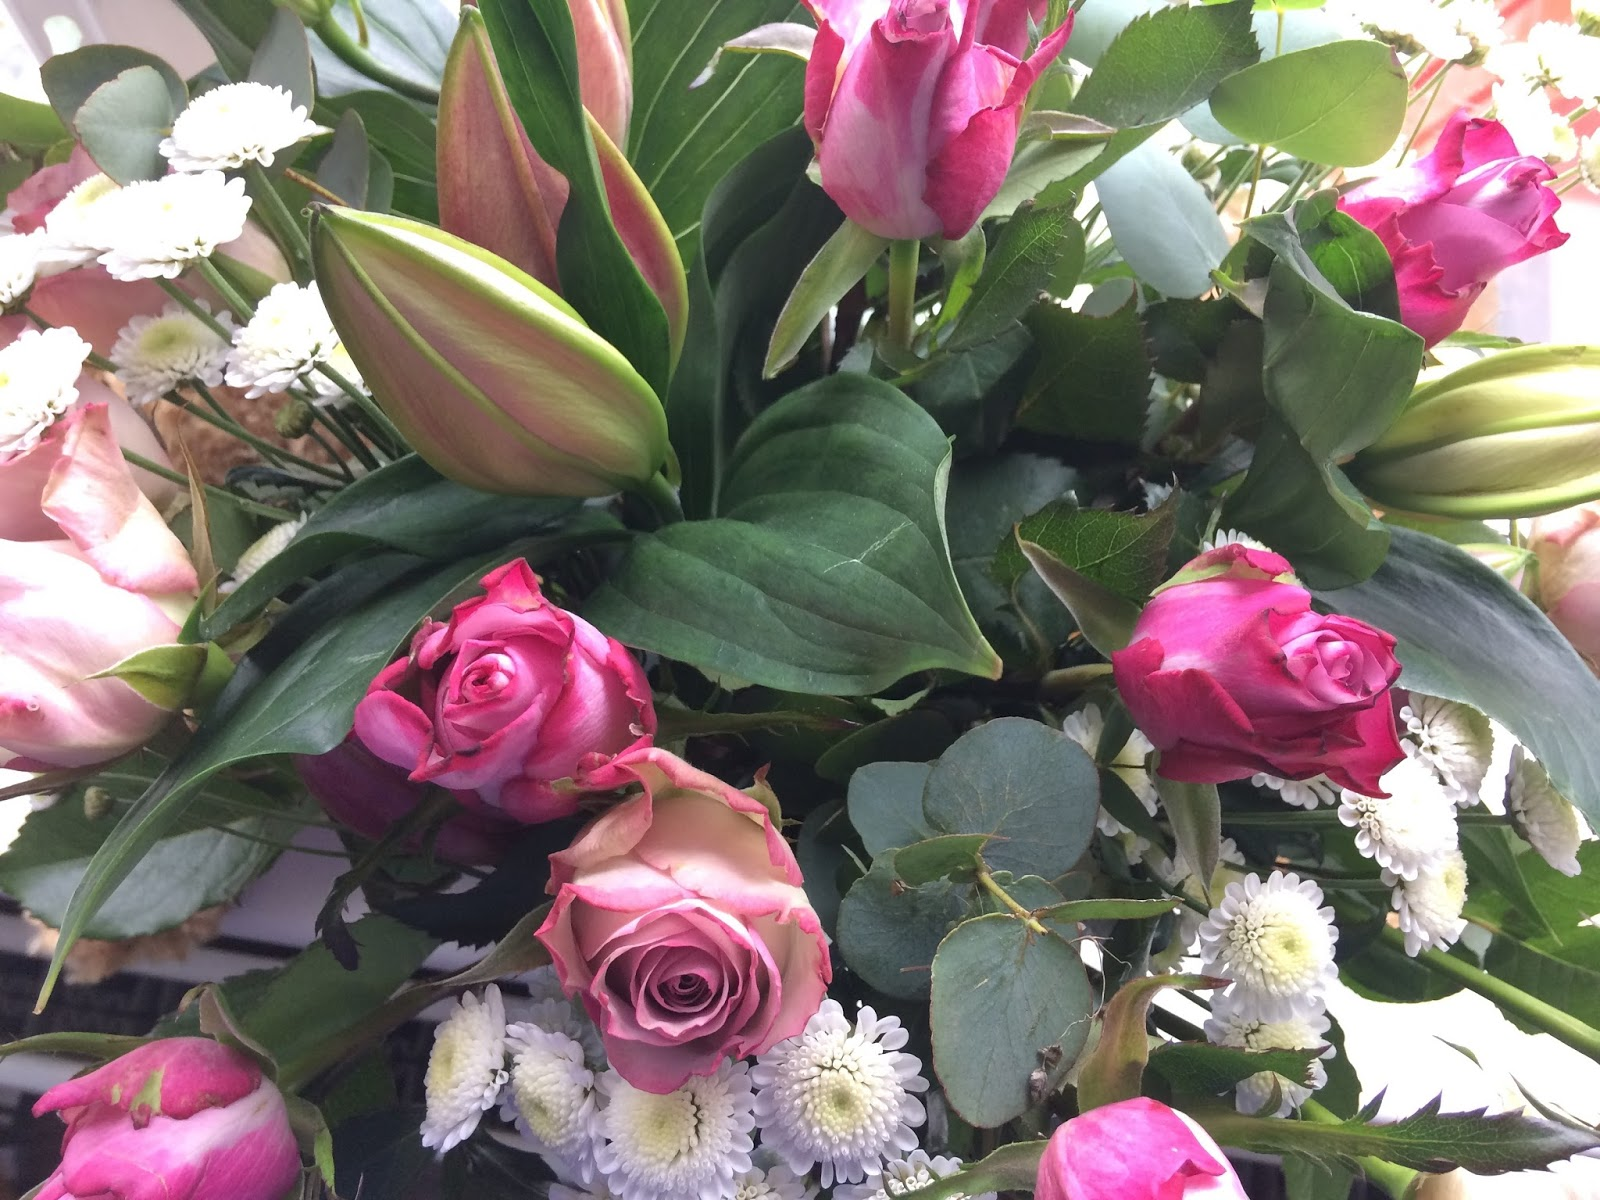 Luxury mothers day flowers review prestige flowers truly madly i received an email from prestige to say that the bouquet was to be delivered at the end of the week i was a little concerned that this would coincide with izmirmasajfo Choice Image